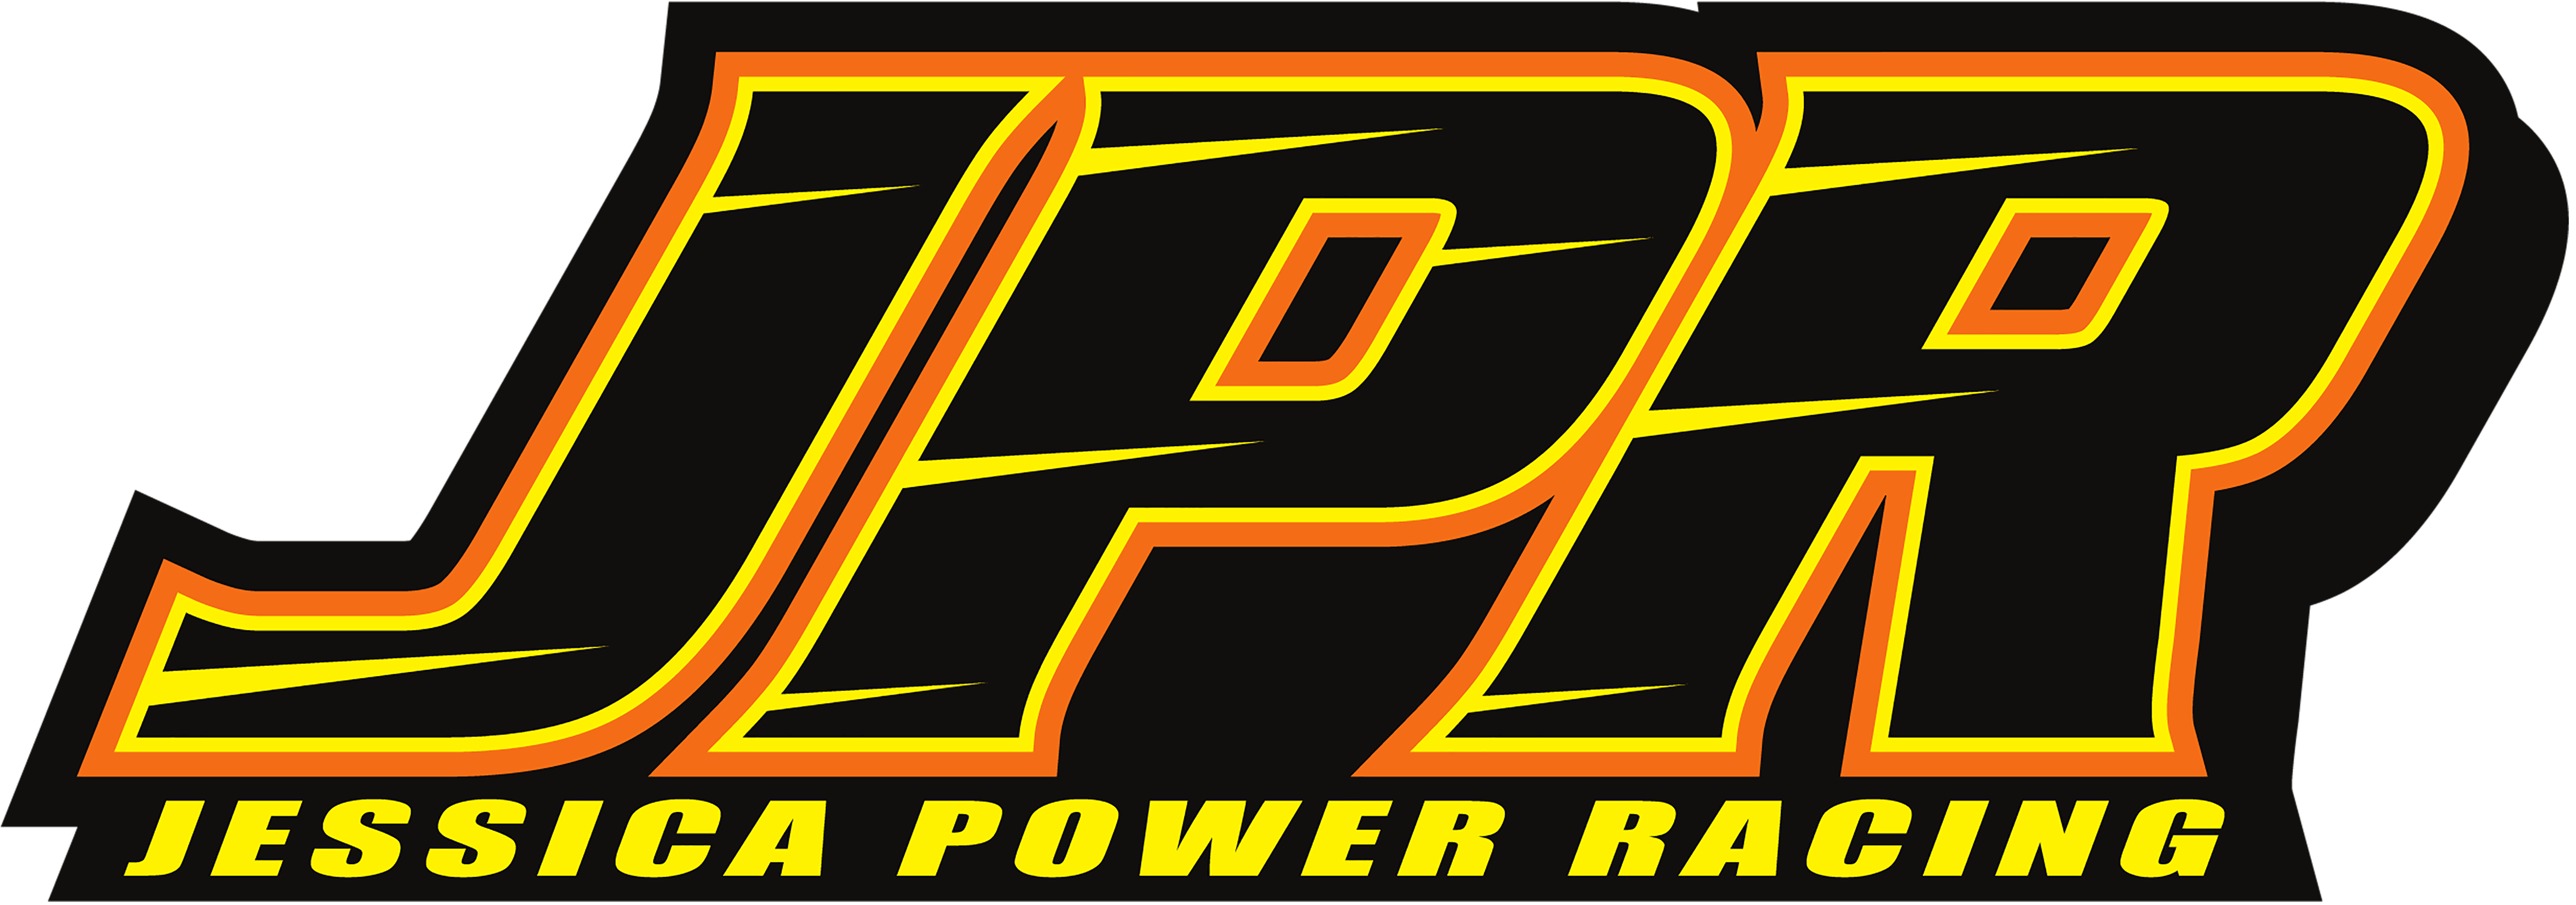 Jessica Power Racing